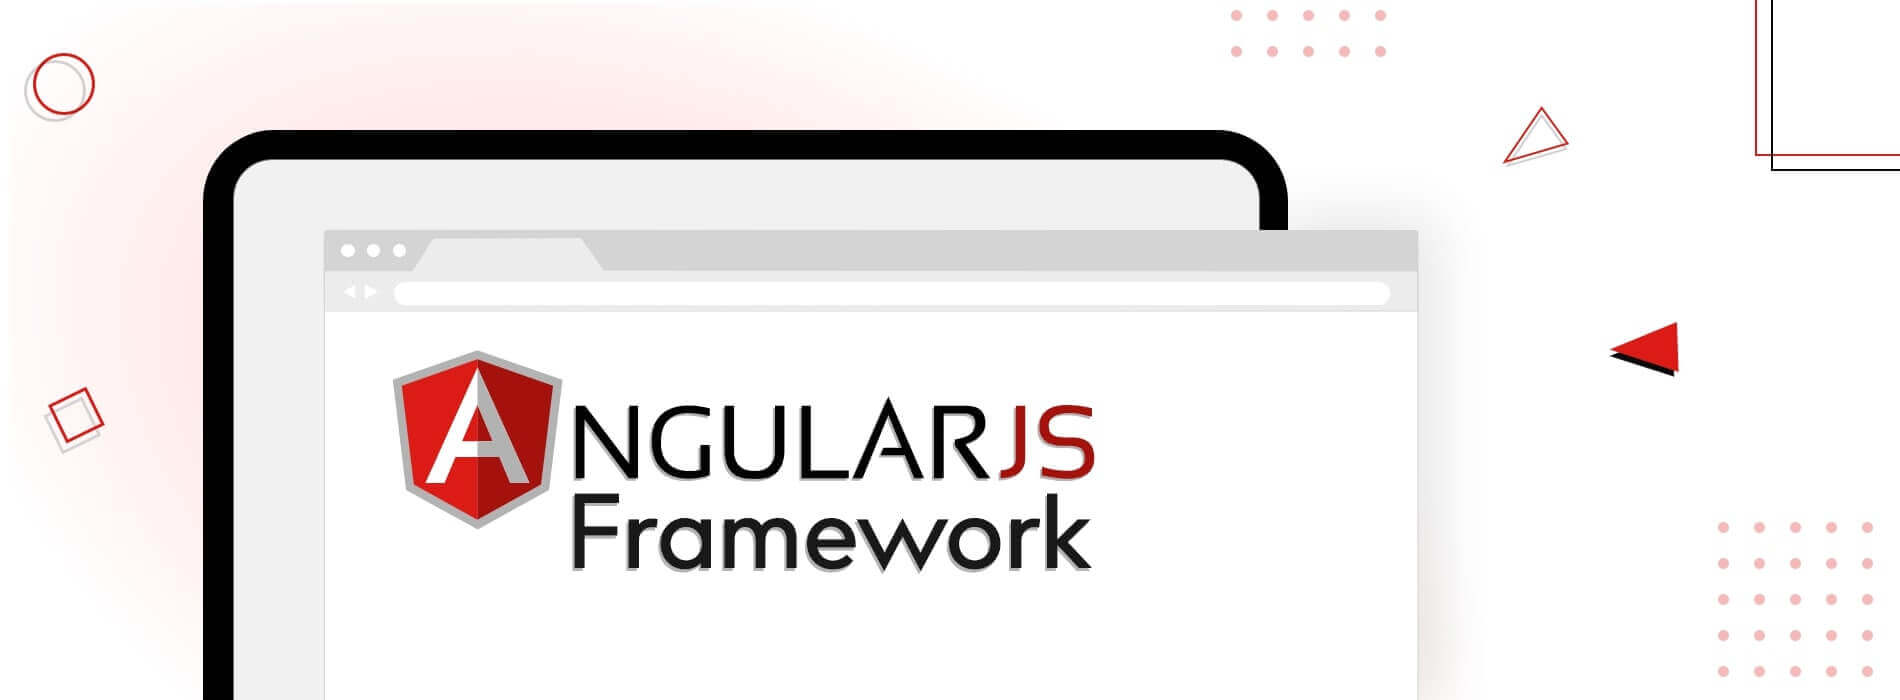 Angular JS Framework : Why and When Should You Use?